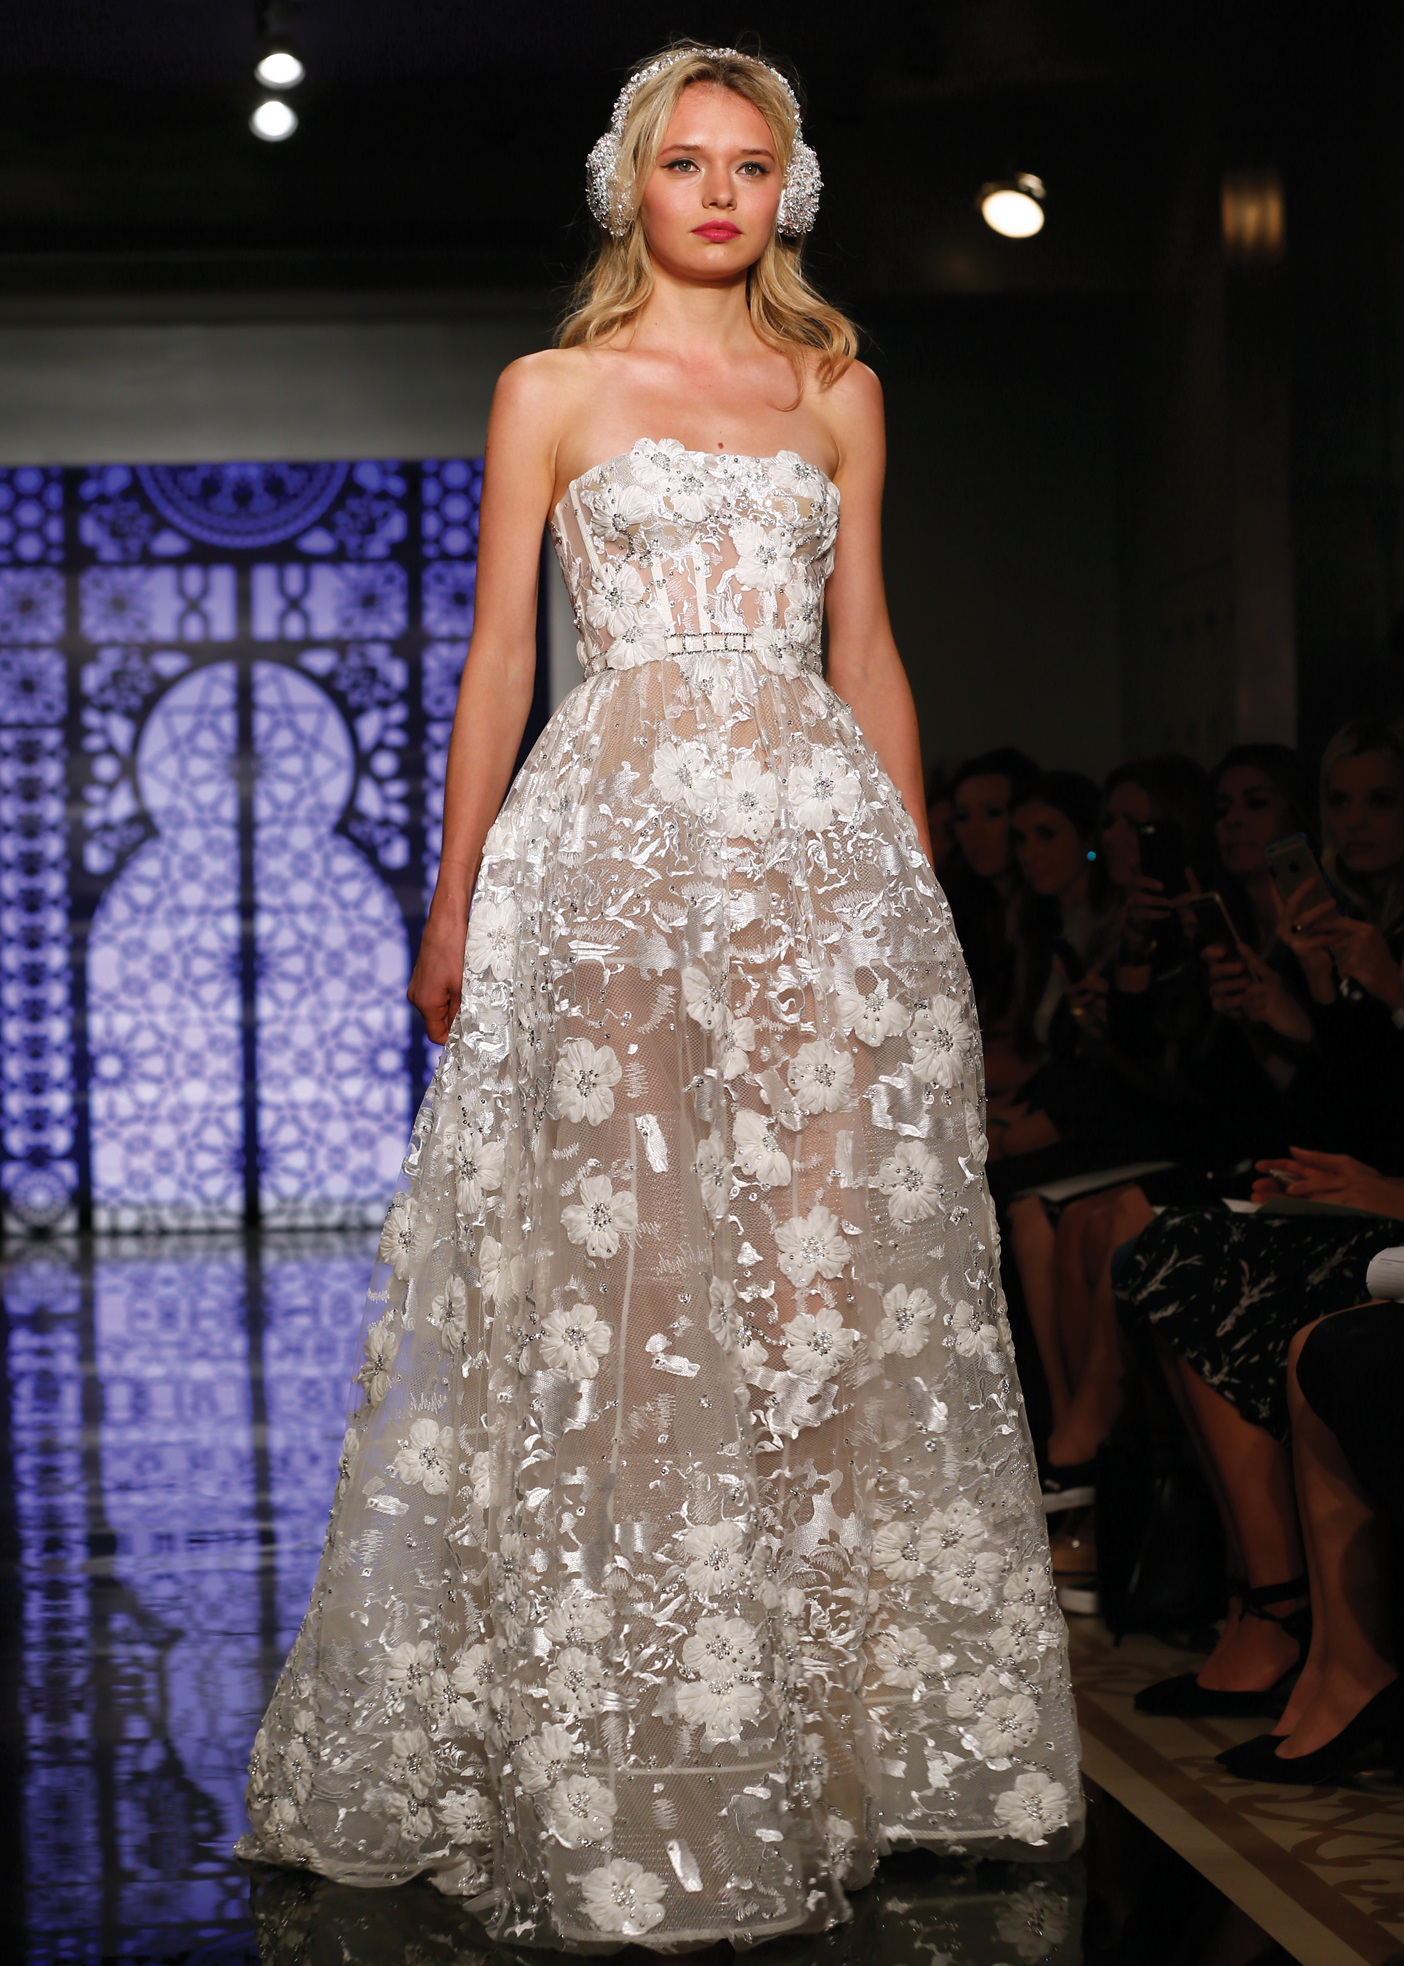 Ballgown Bridal Wedding Dress by Reem Acra in NY, NJ